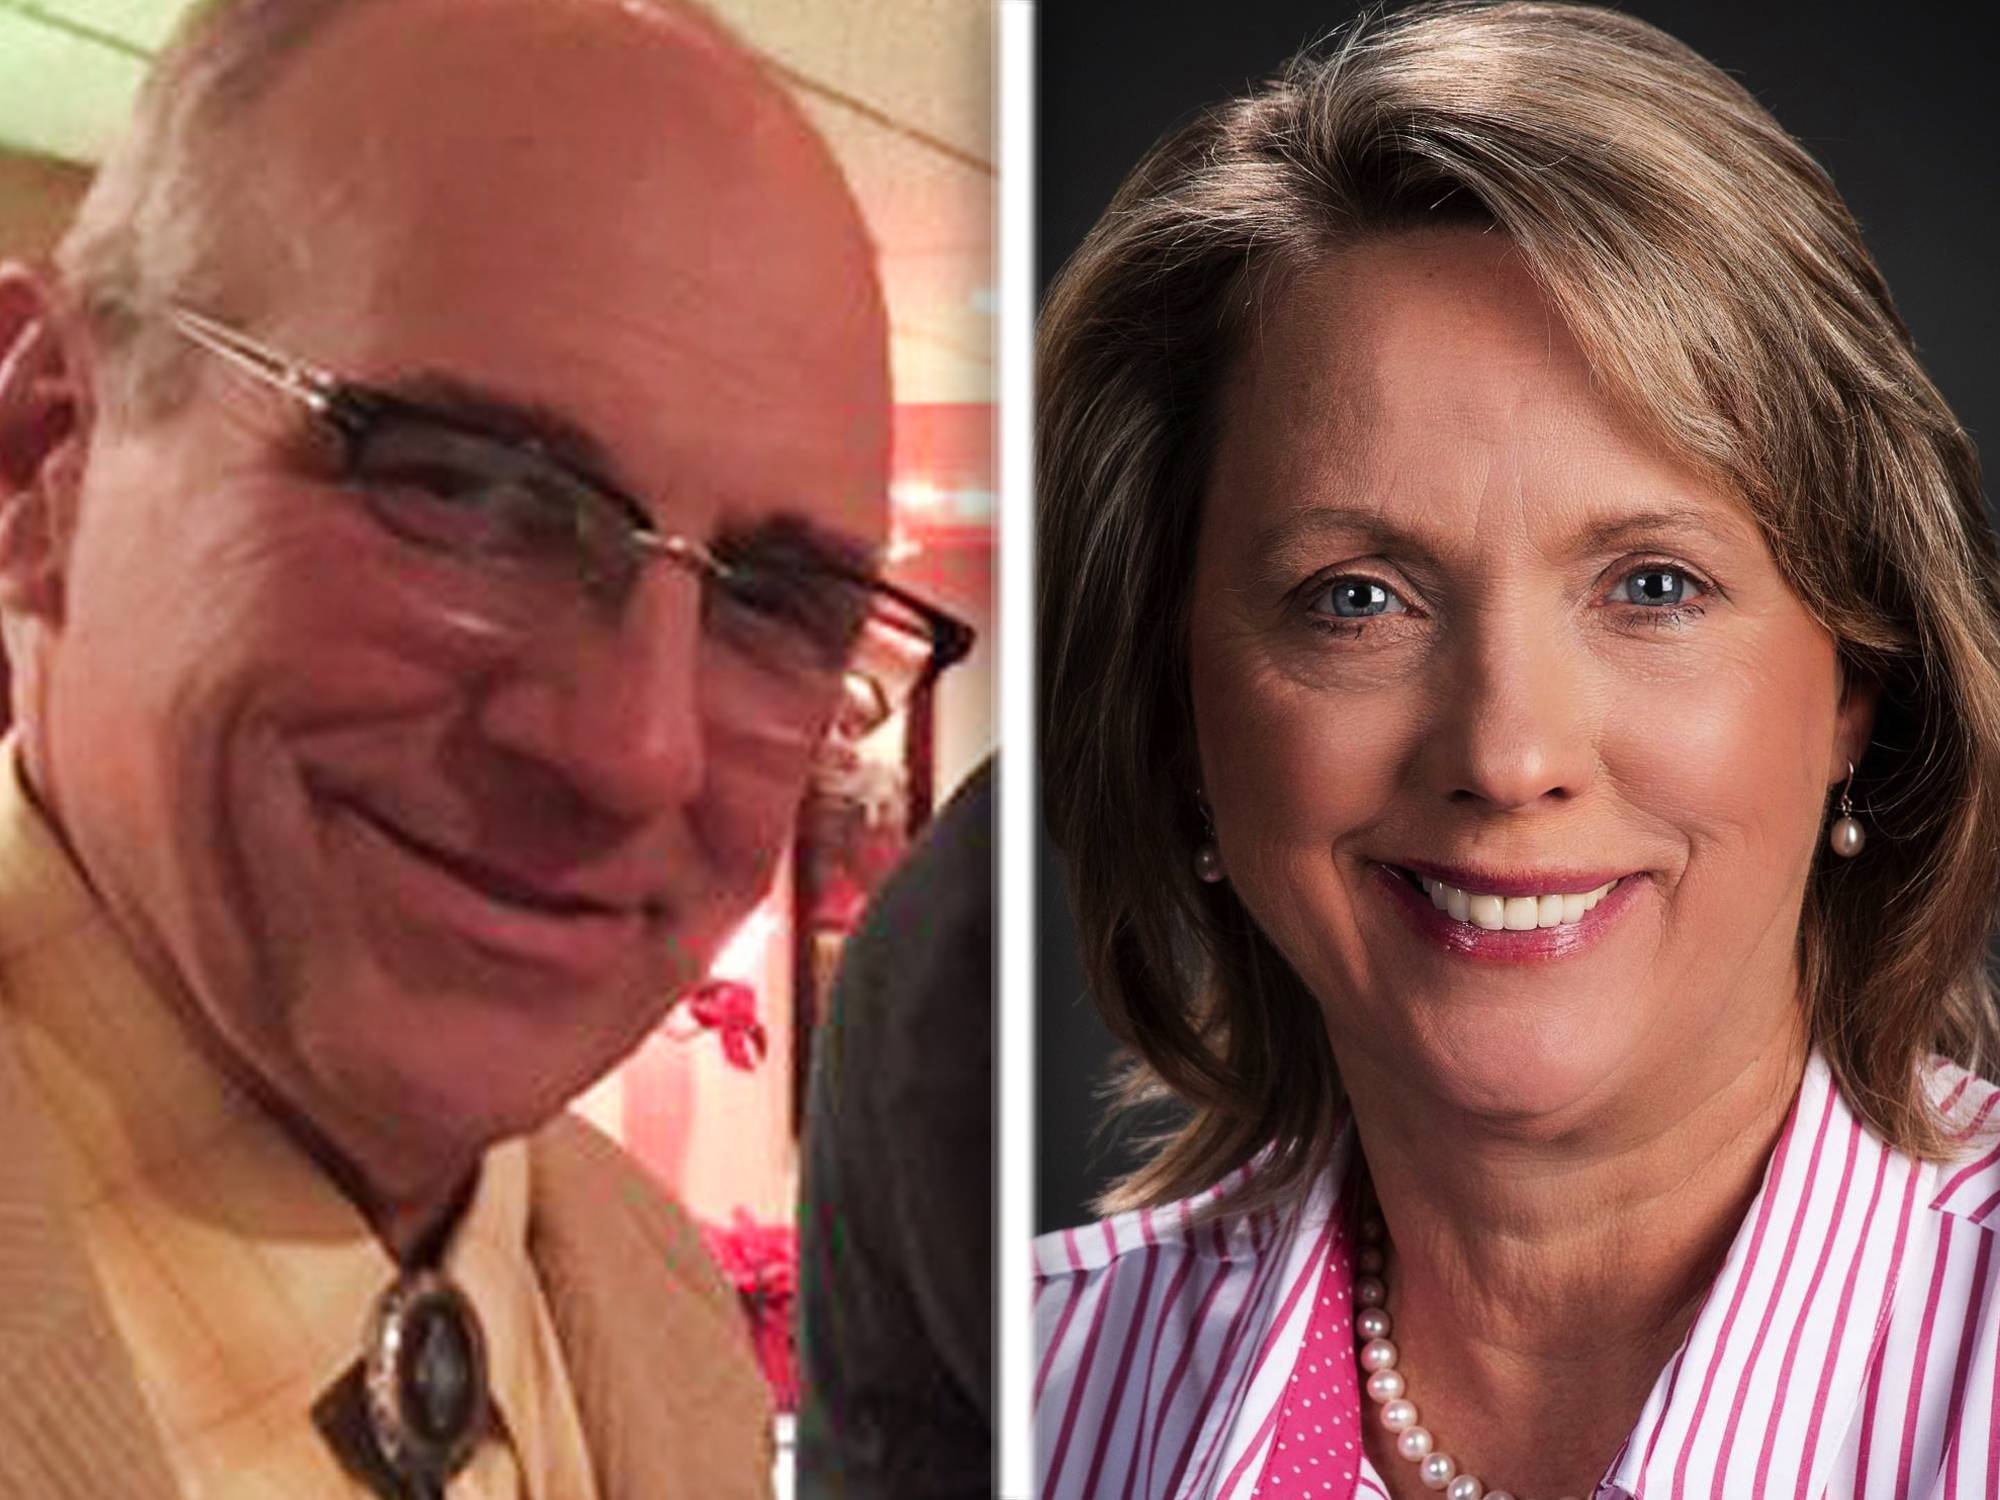 Tom Koppie, left, and Connie Von Keudell, right, are Republican candidates for Kane County Board, Dist. 9